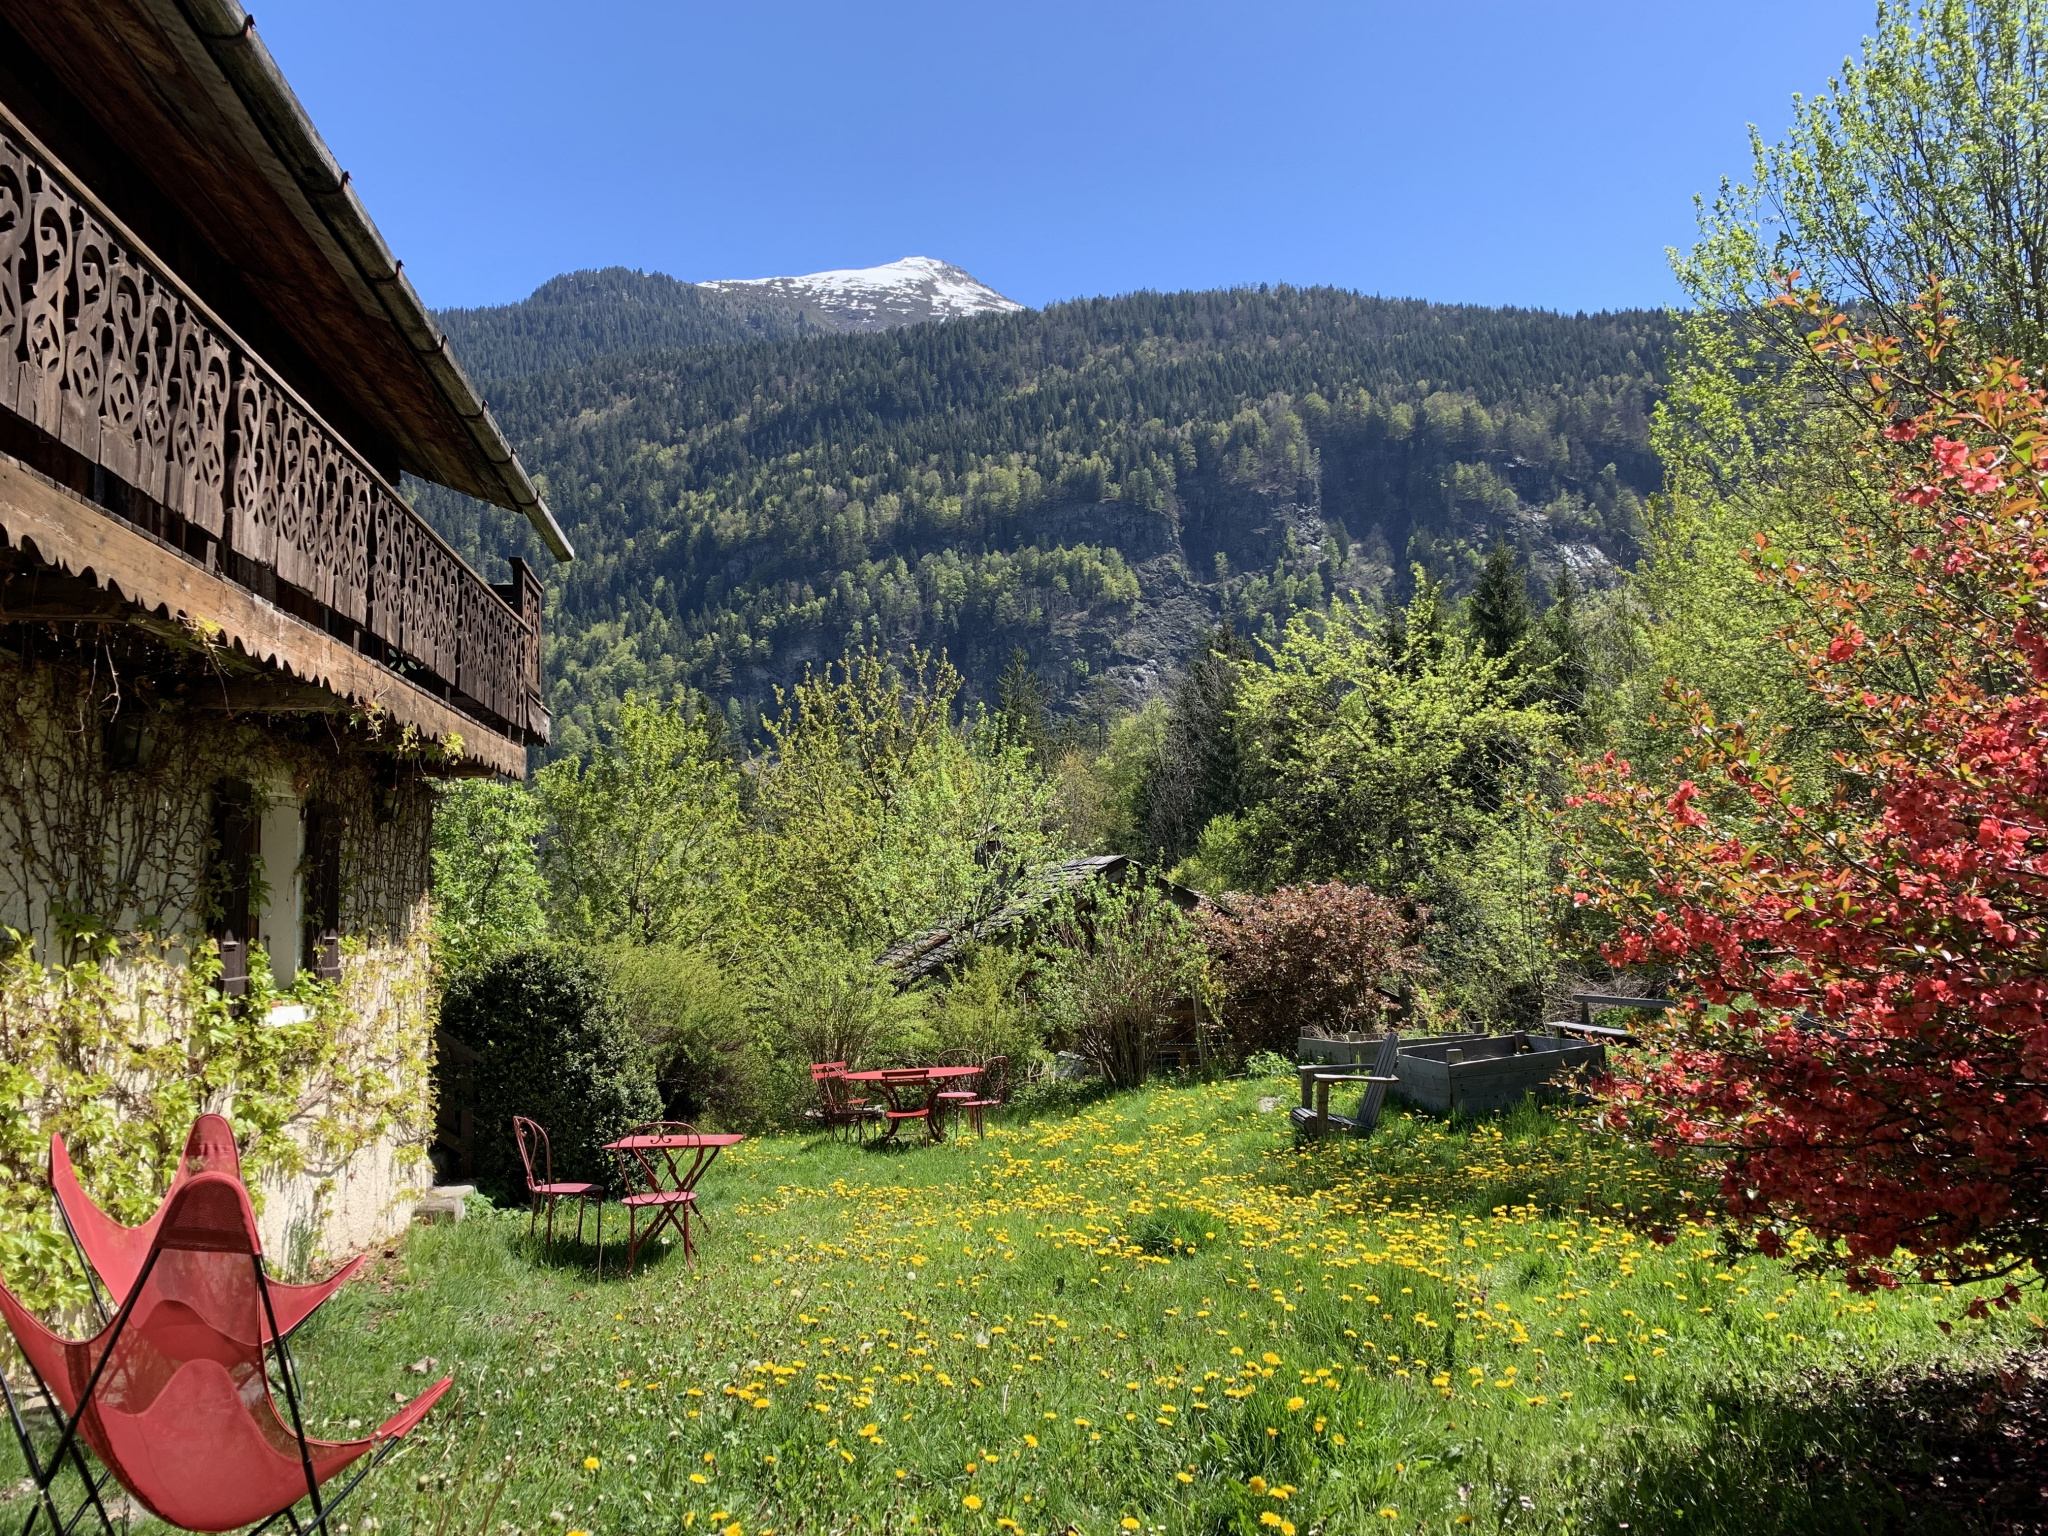 HUGE  6 BEDROOM TRIPLEX WITH CELLAR AND GARDEN IN QUIET AREA, LES HOUCHES